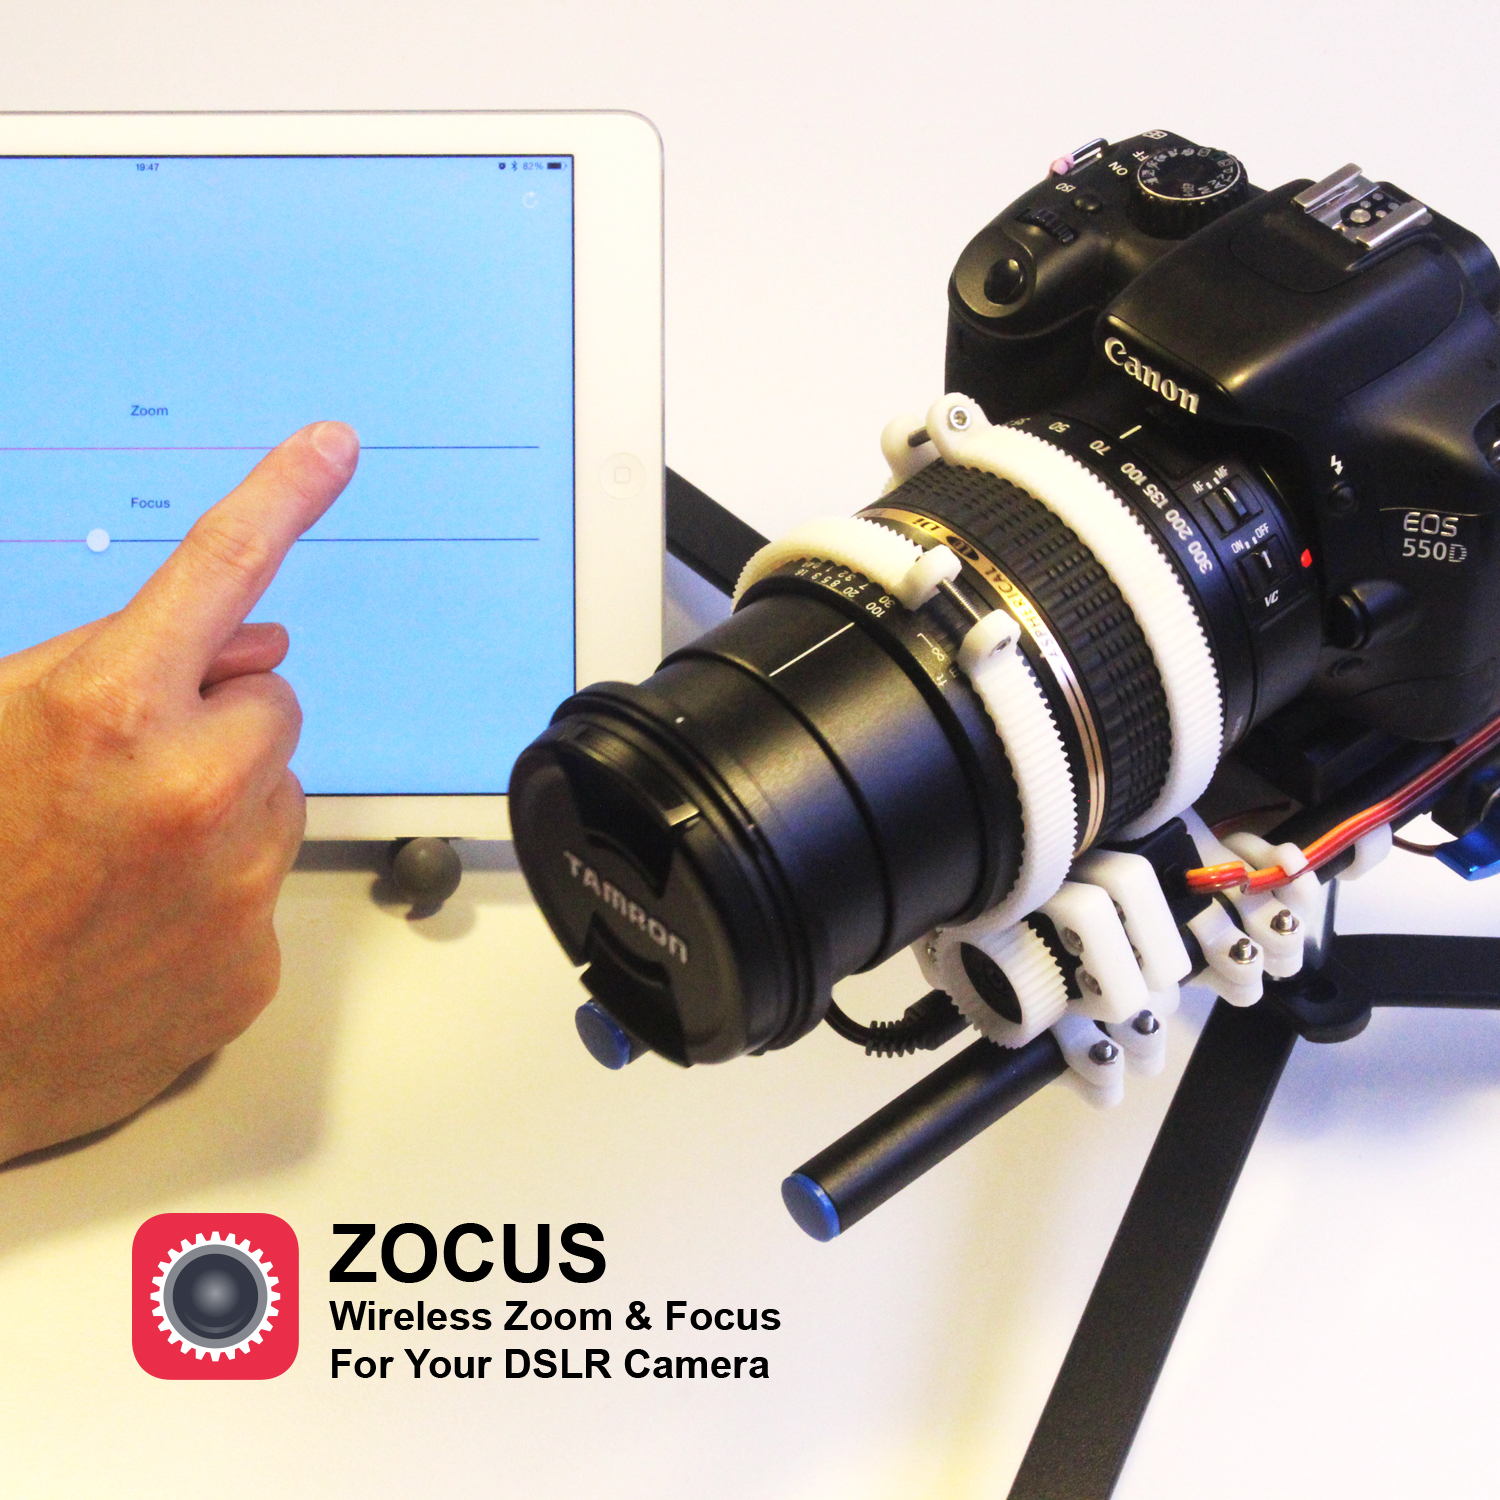 Picture of Zocus - Wireless Zoom & Focus for Your DSLR Camera